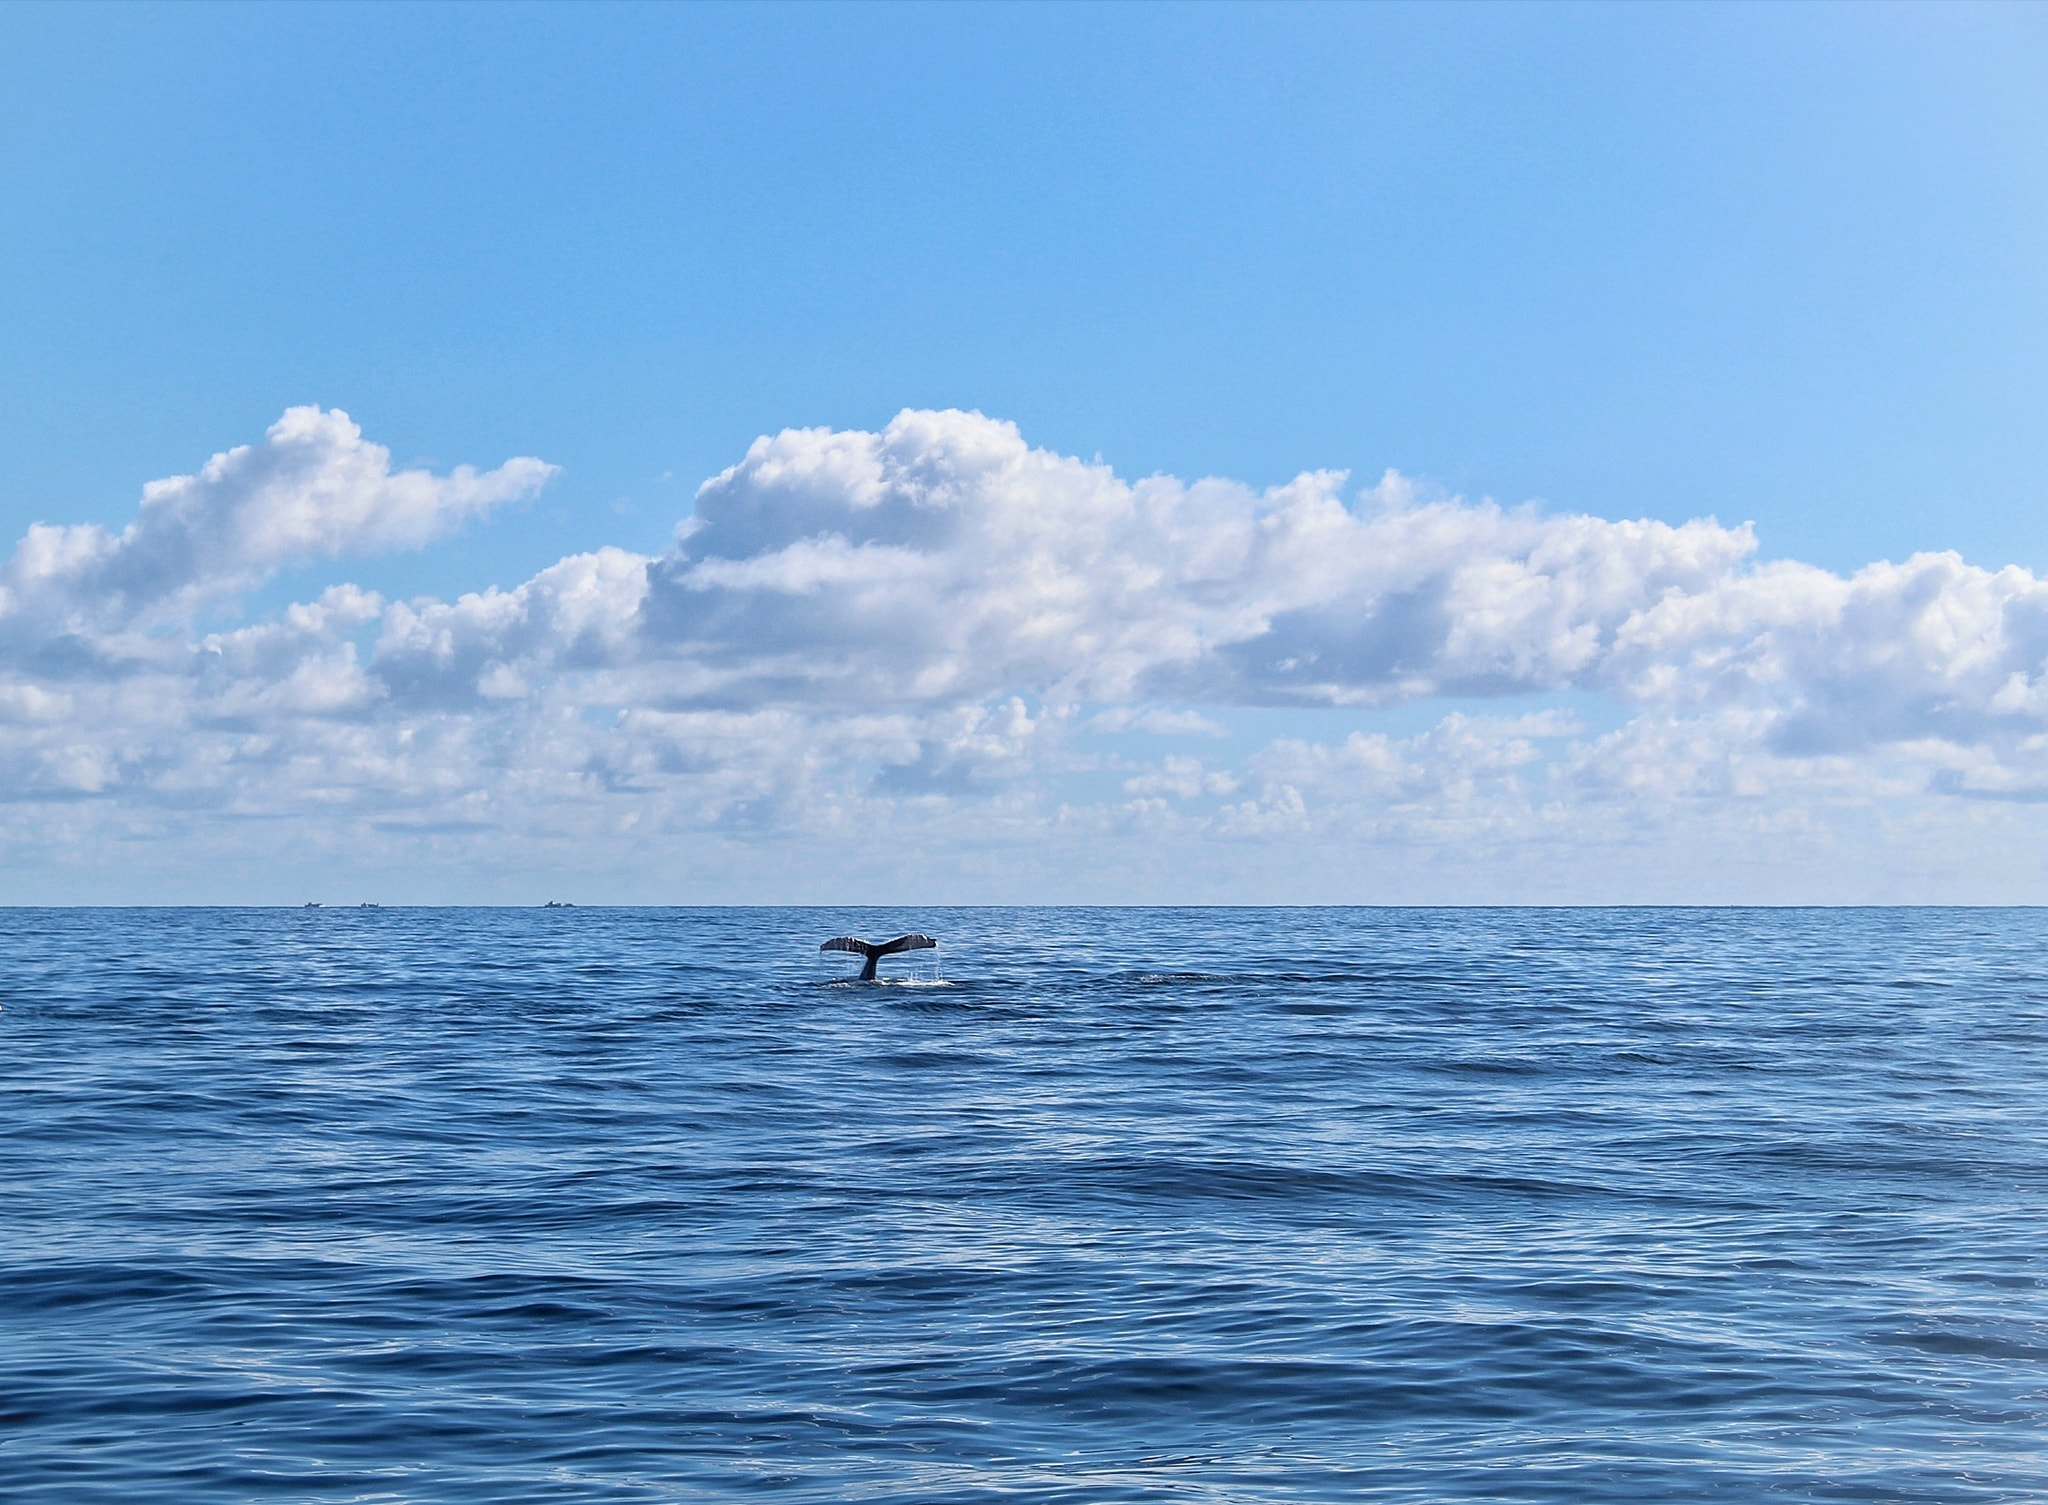 In Dominica whale season started